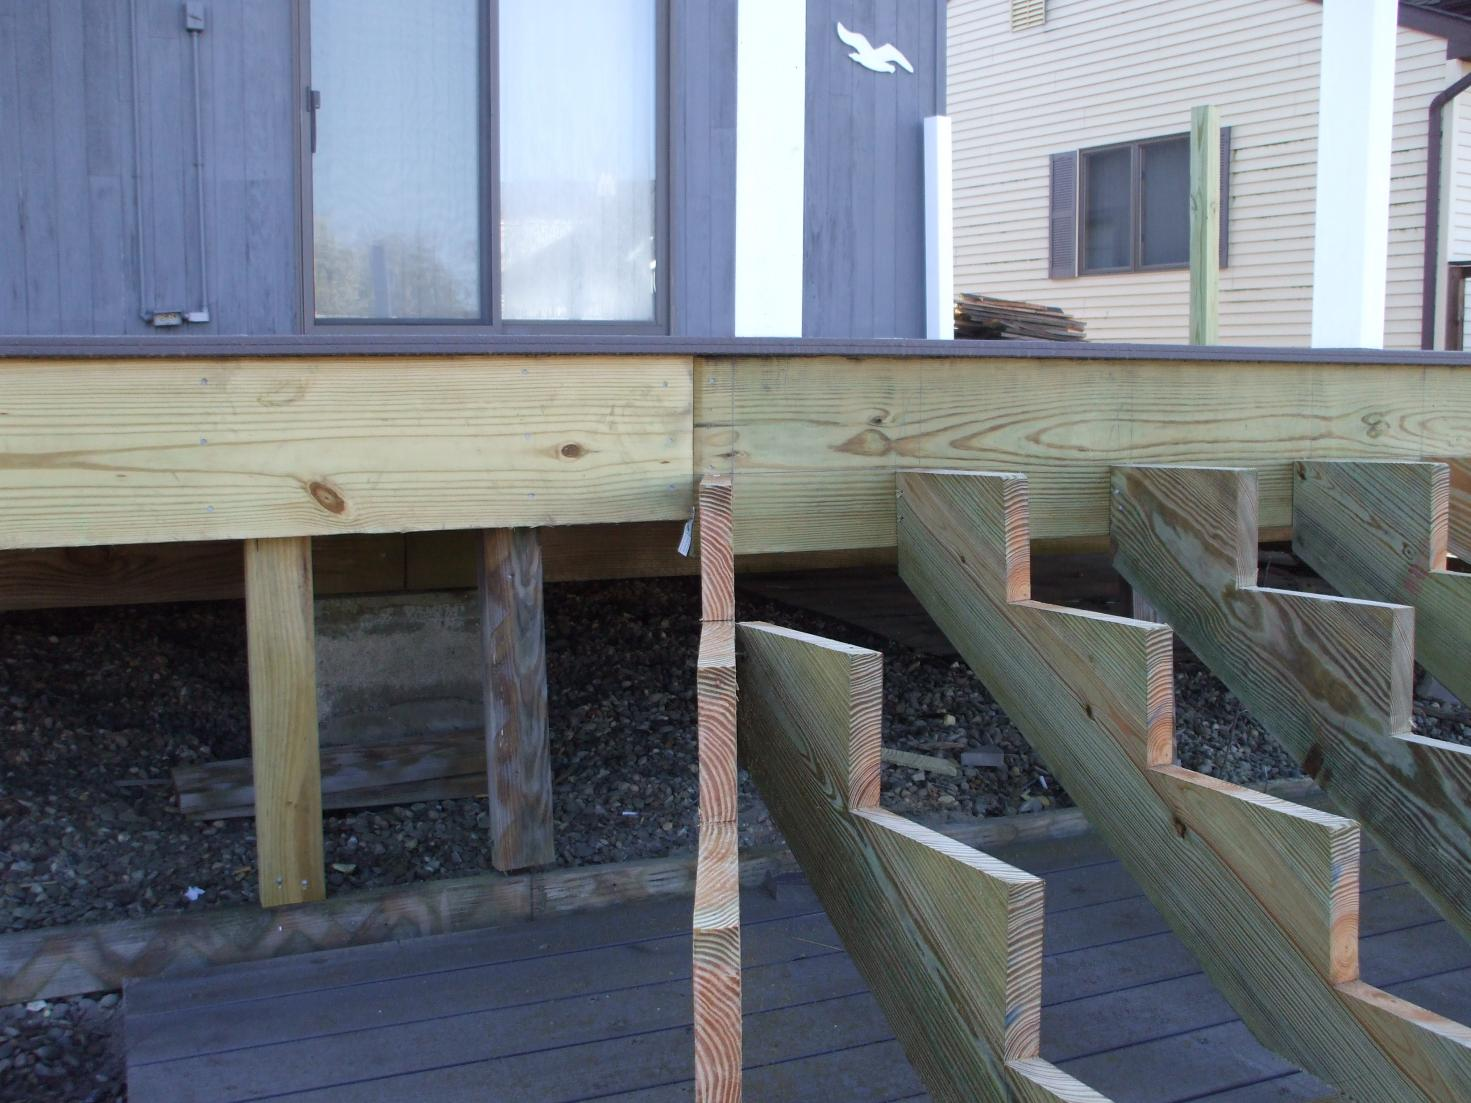 Build Deck Stairs | Cut Stair Stringers | Attaching Stringers to Deck